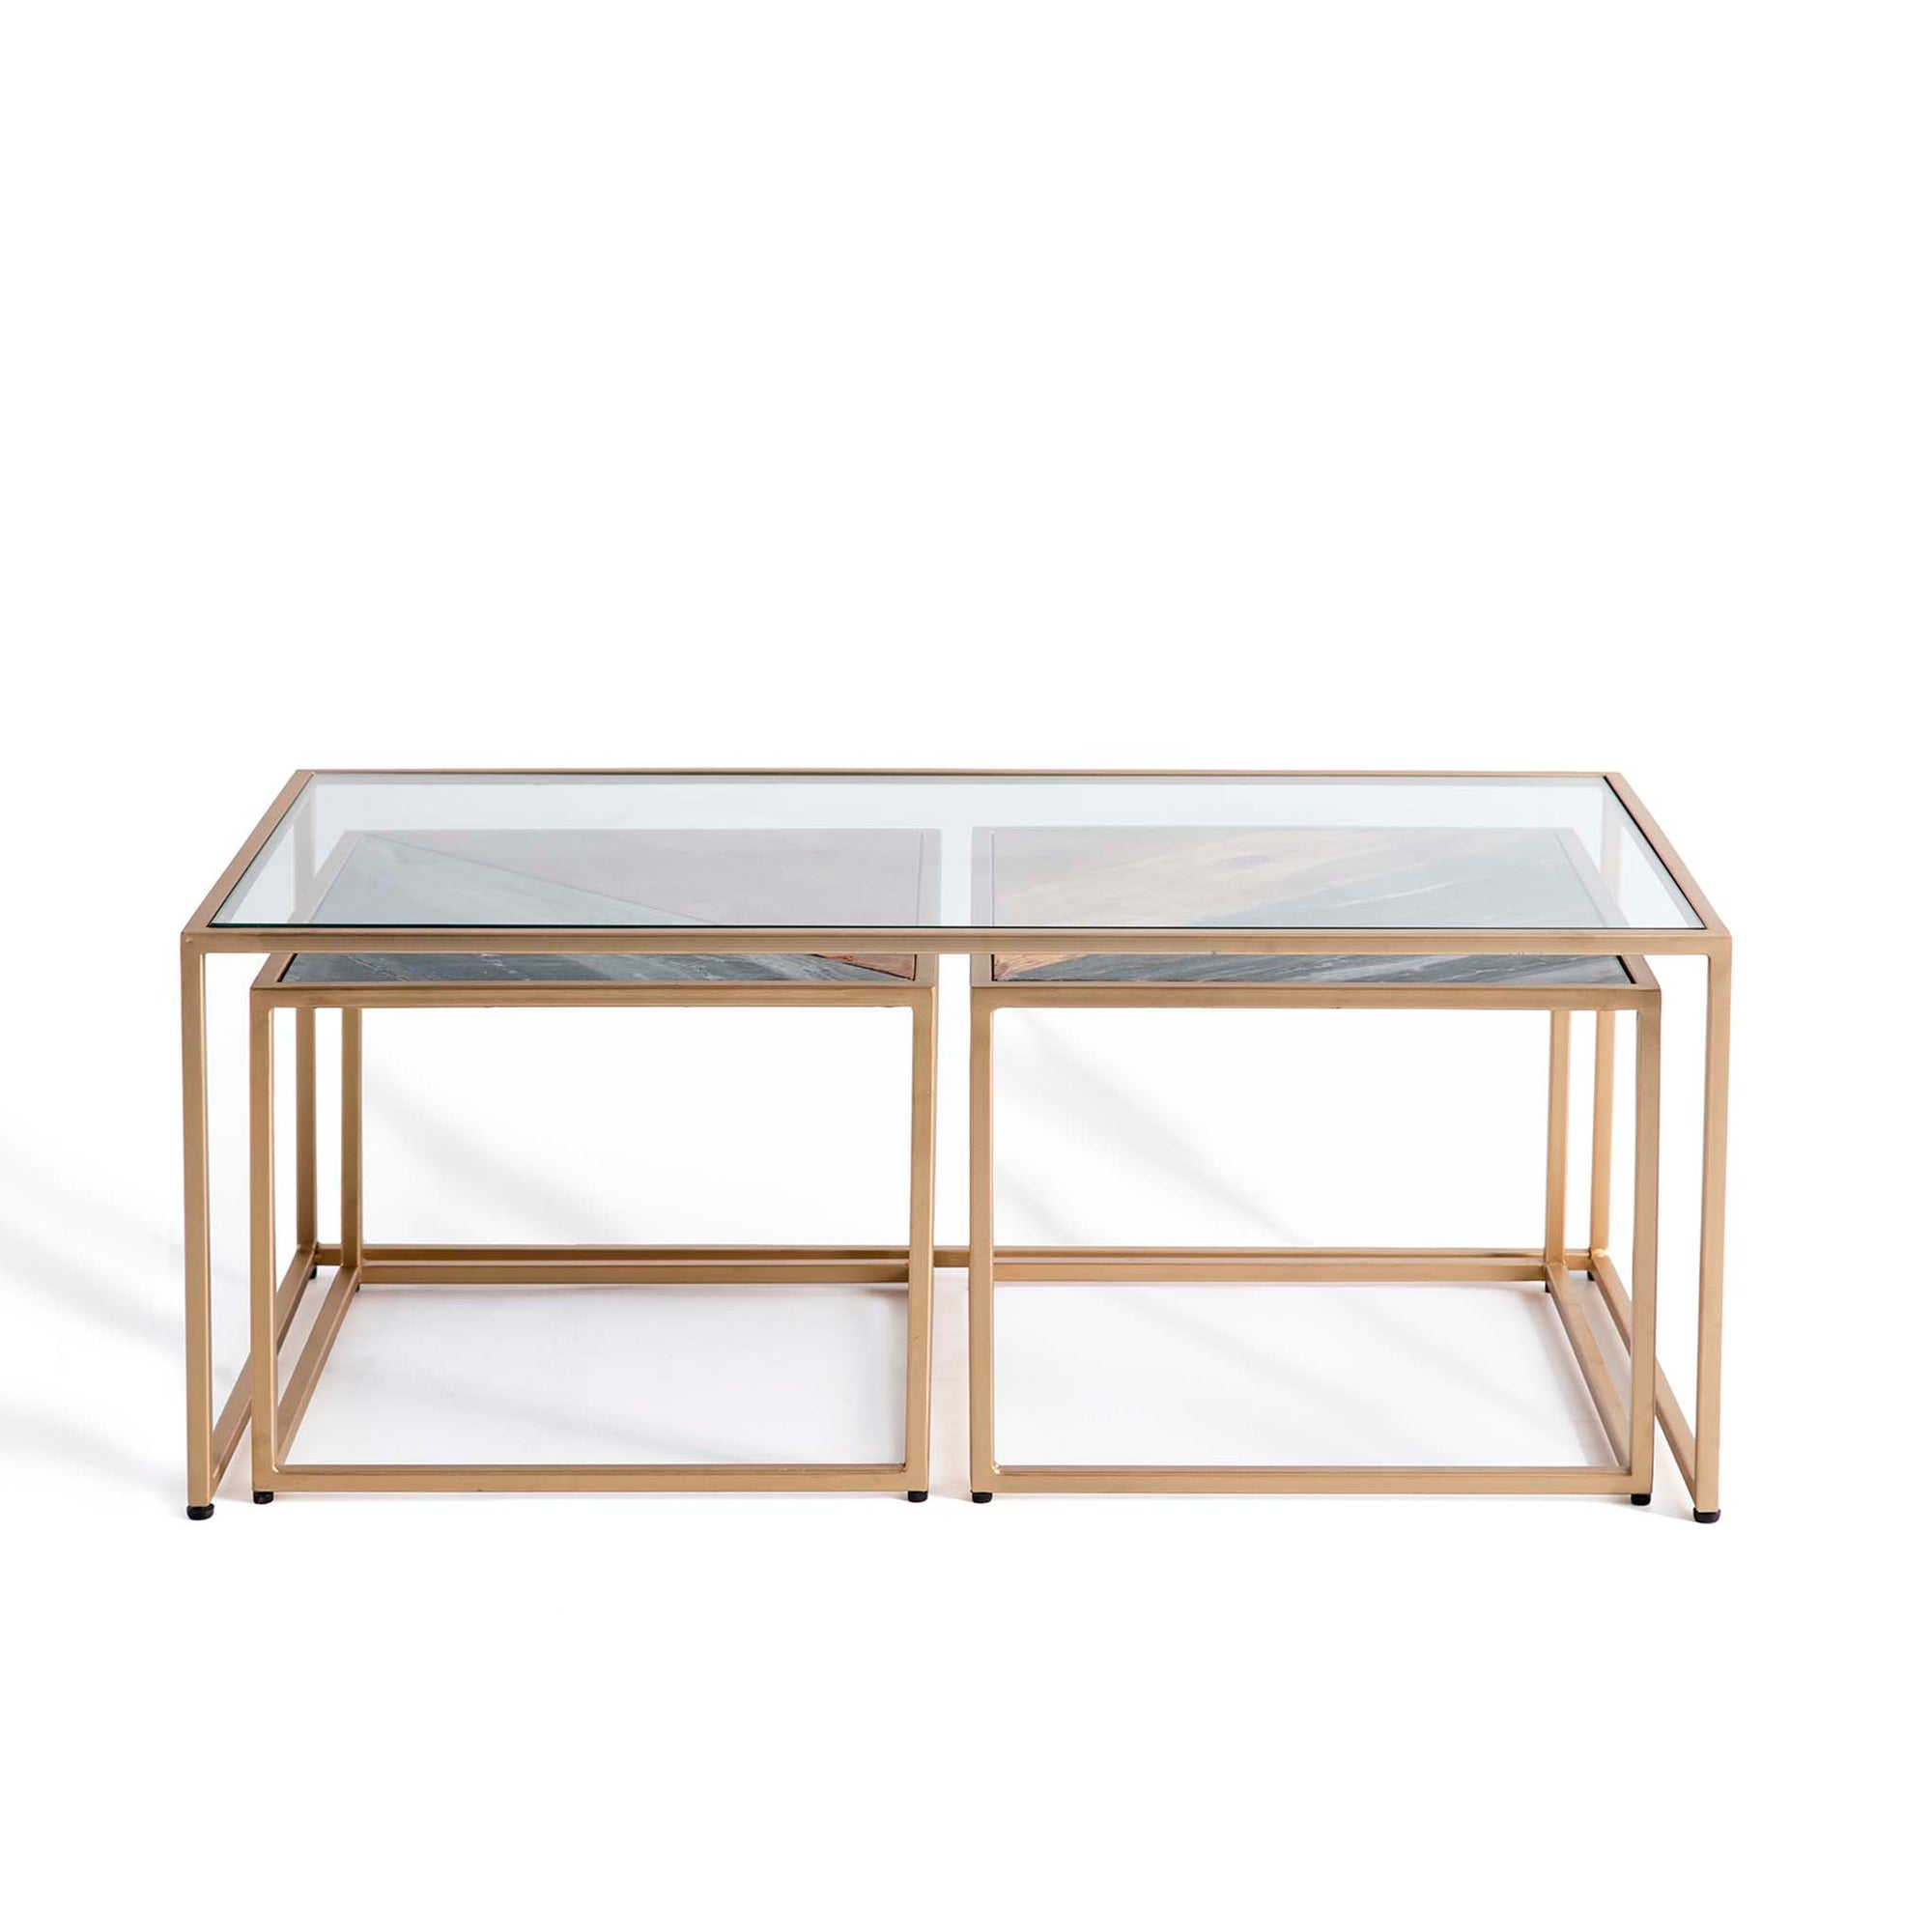 Kandla Glass Topped Coffee Table with Grey Marble & Wood Nested Tables and Gold Bases by Roseland Furniture